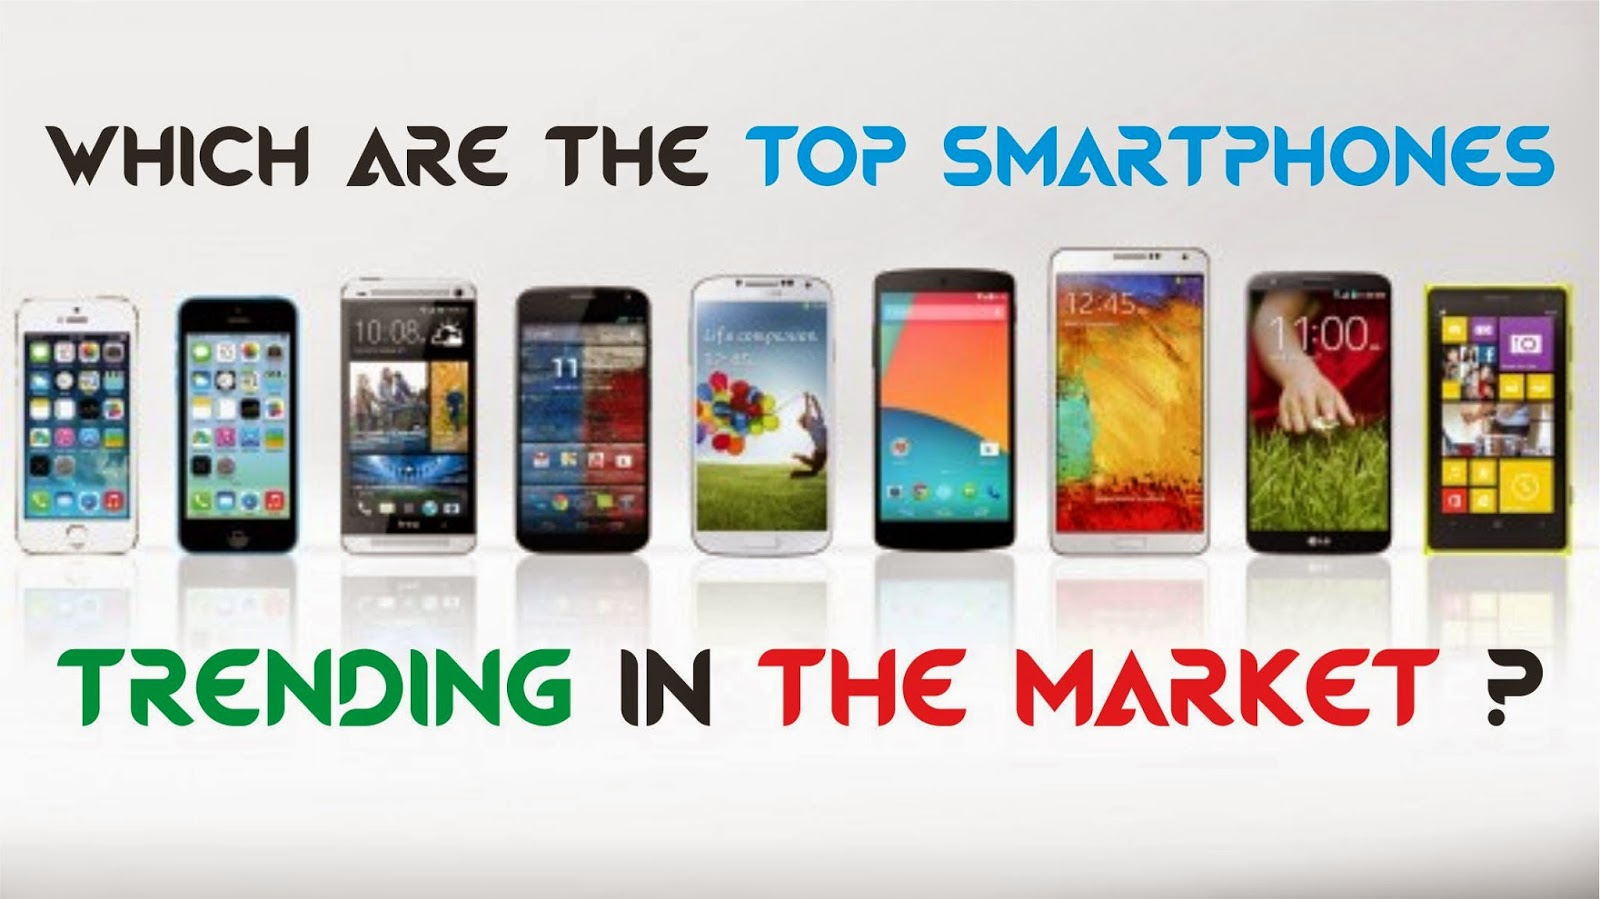 Top Smartphones Trending in the Market !